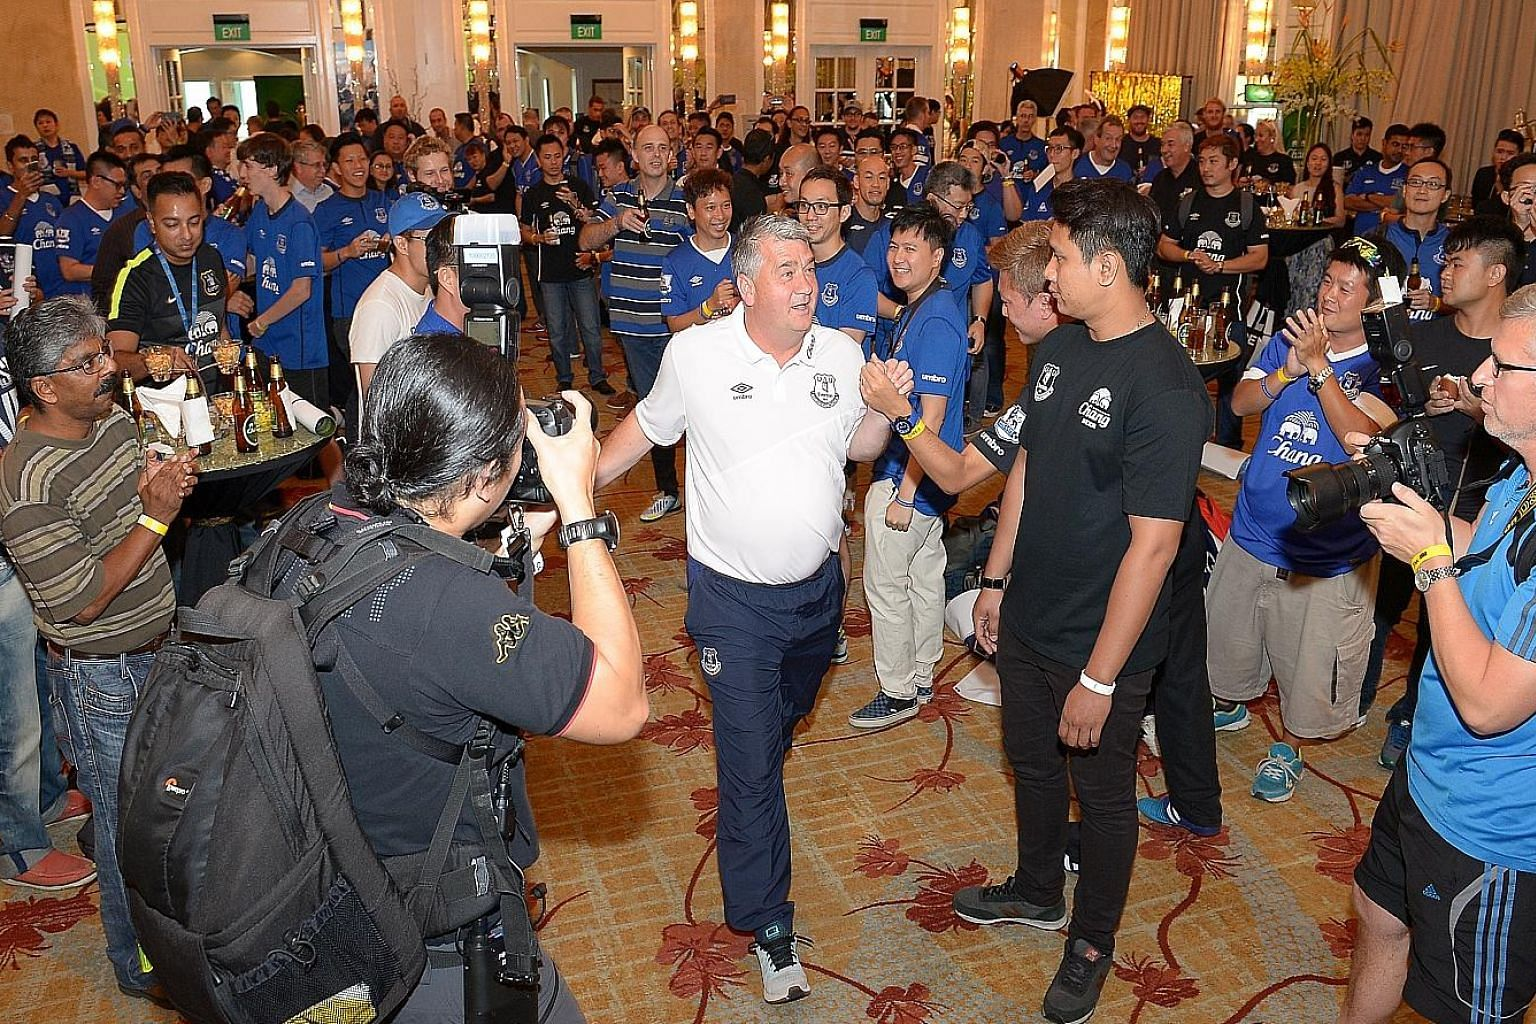 Everton ambassador Ian Snodin is the centre of attention at a fans' event to celebrate the club's partnership with Chang Beer at the InterContinental Hotel yesterday.